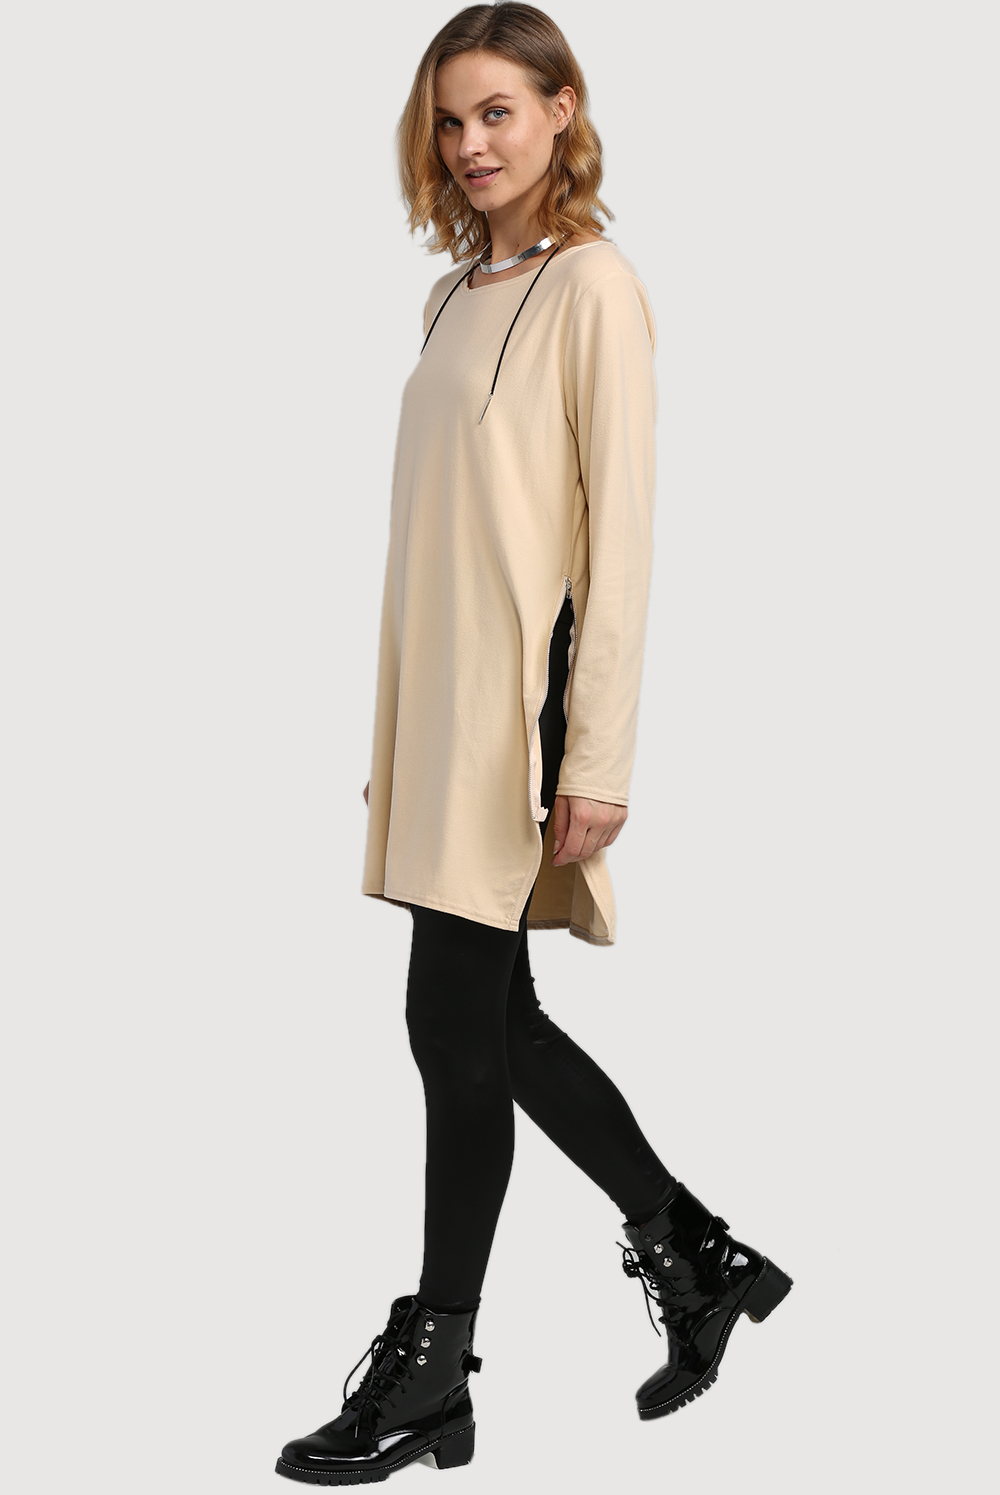 Fashion Round Collar Long Sleeve Pure Color Zipper Type Pollover Women Blouse